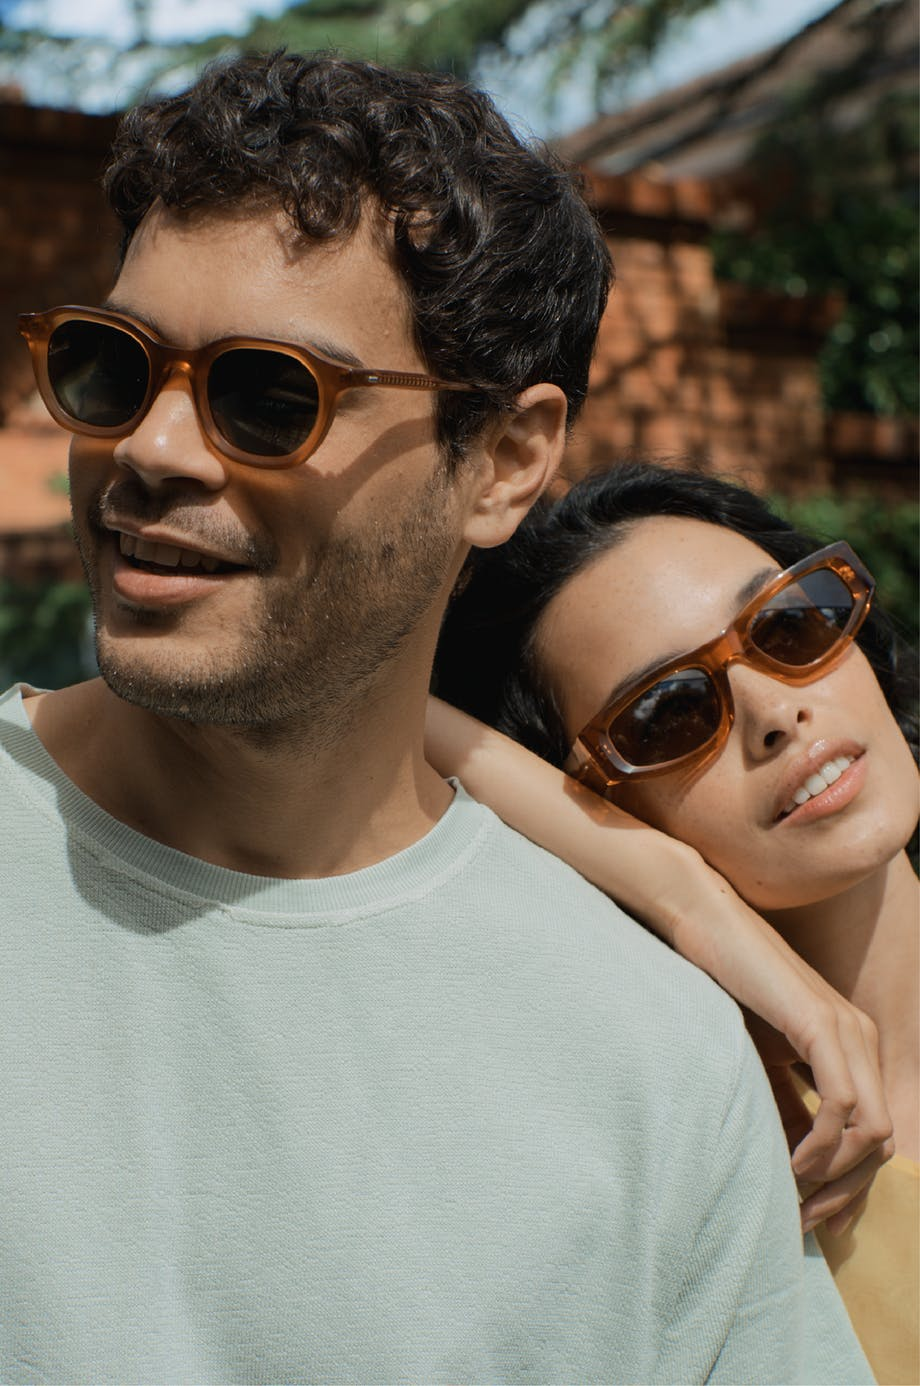 woman leaning on man both wearing sunglasses